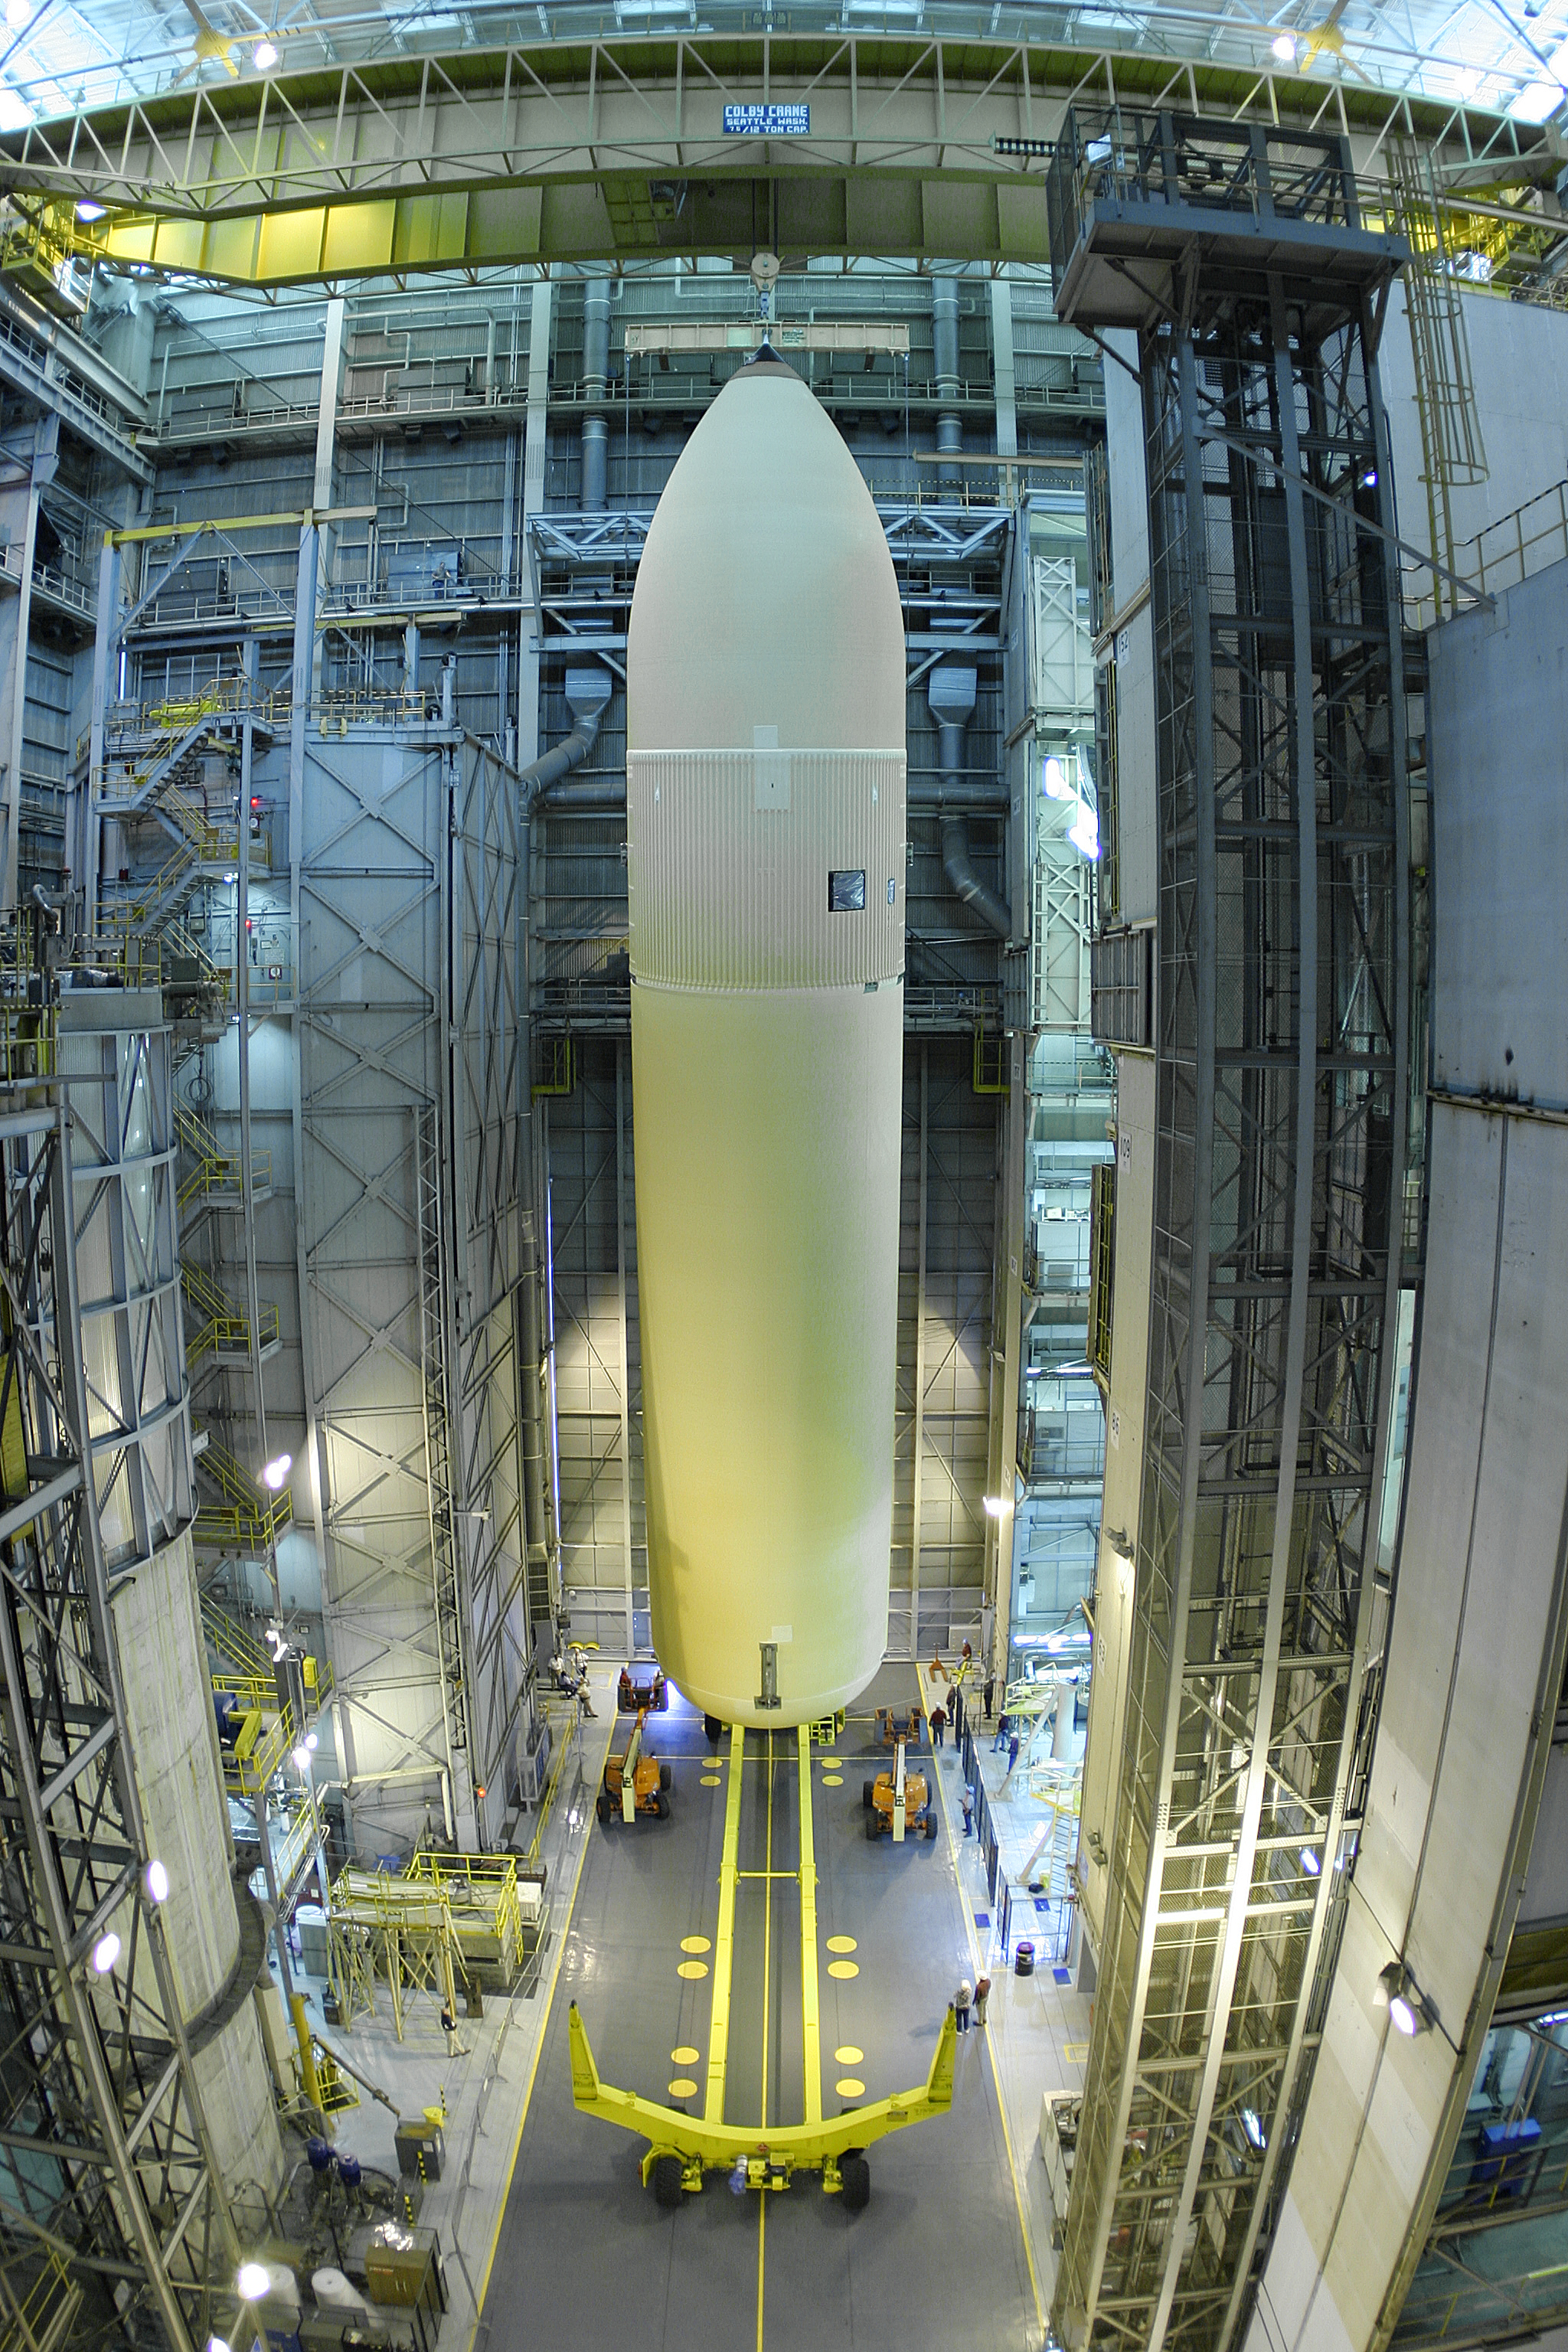 NASA - Space Shuttle External Tank slated to fly next ...